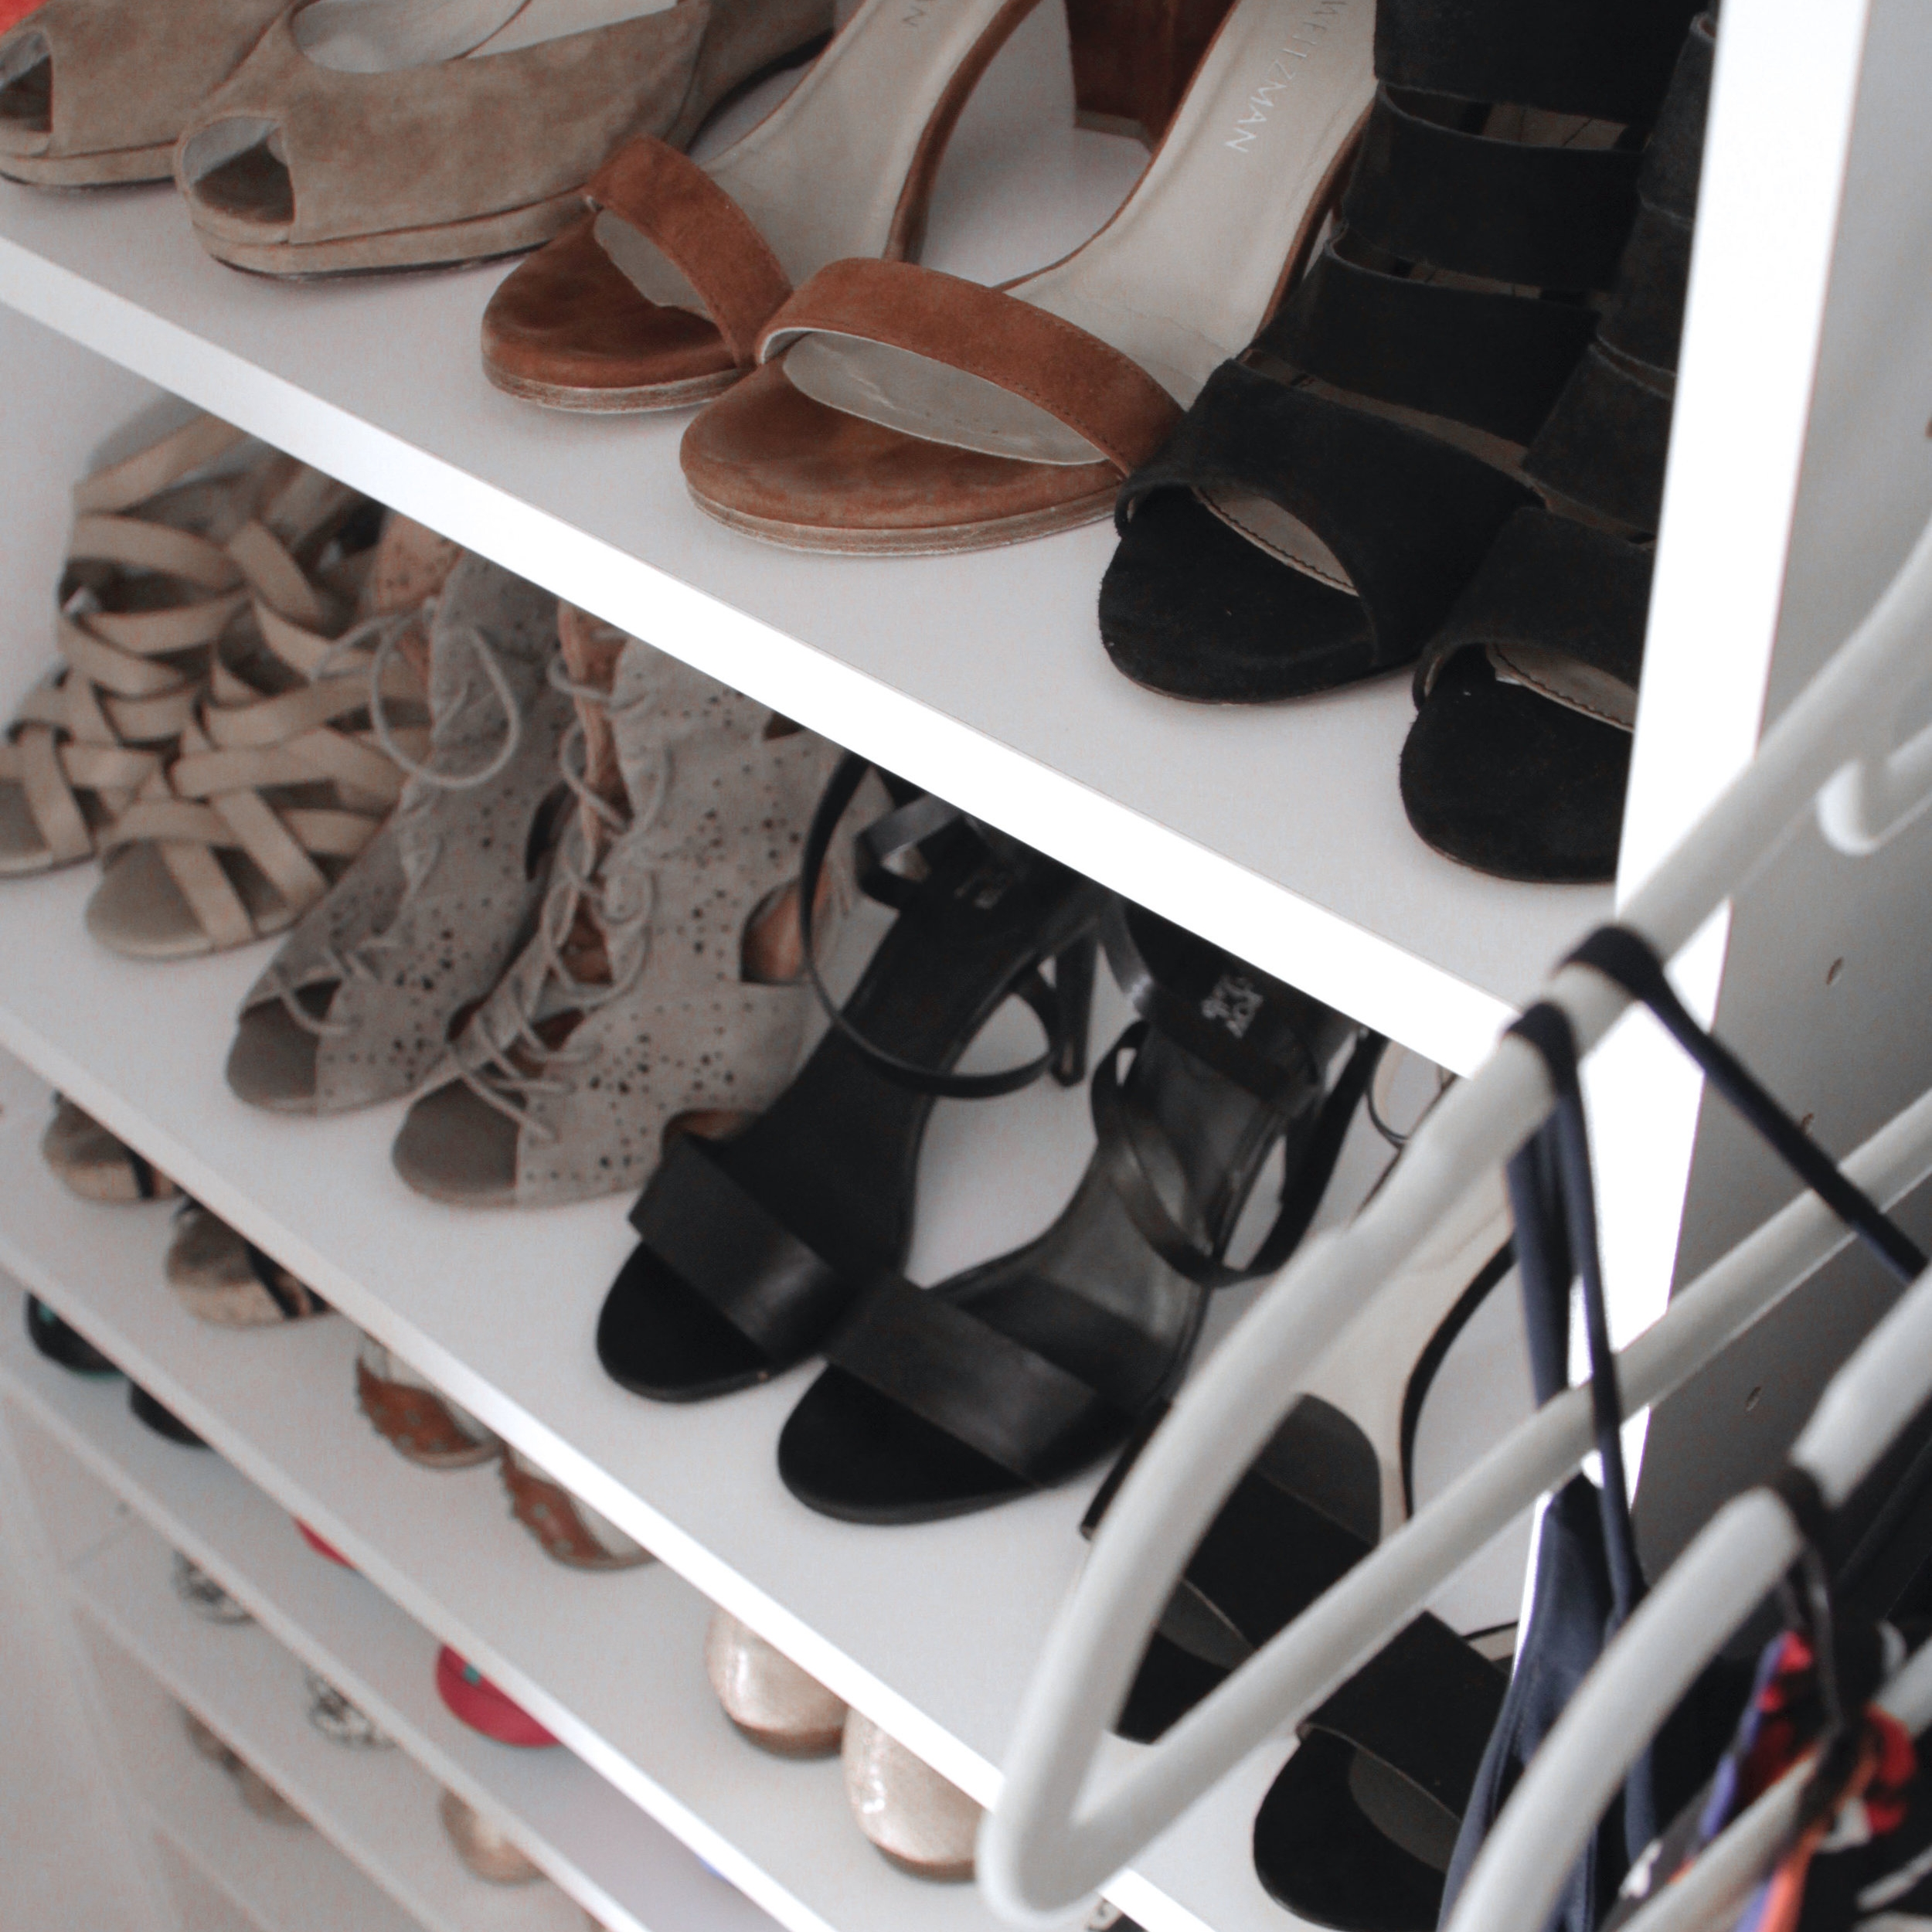 JG shoe shelf.jpg